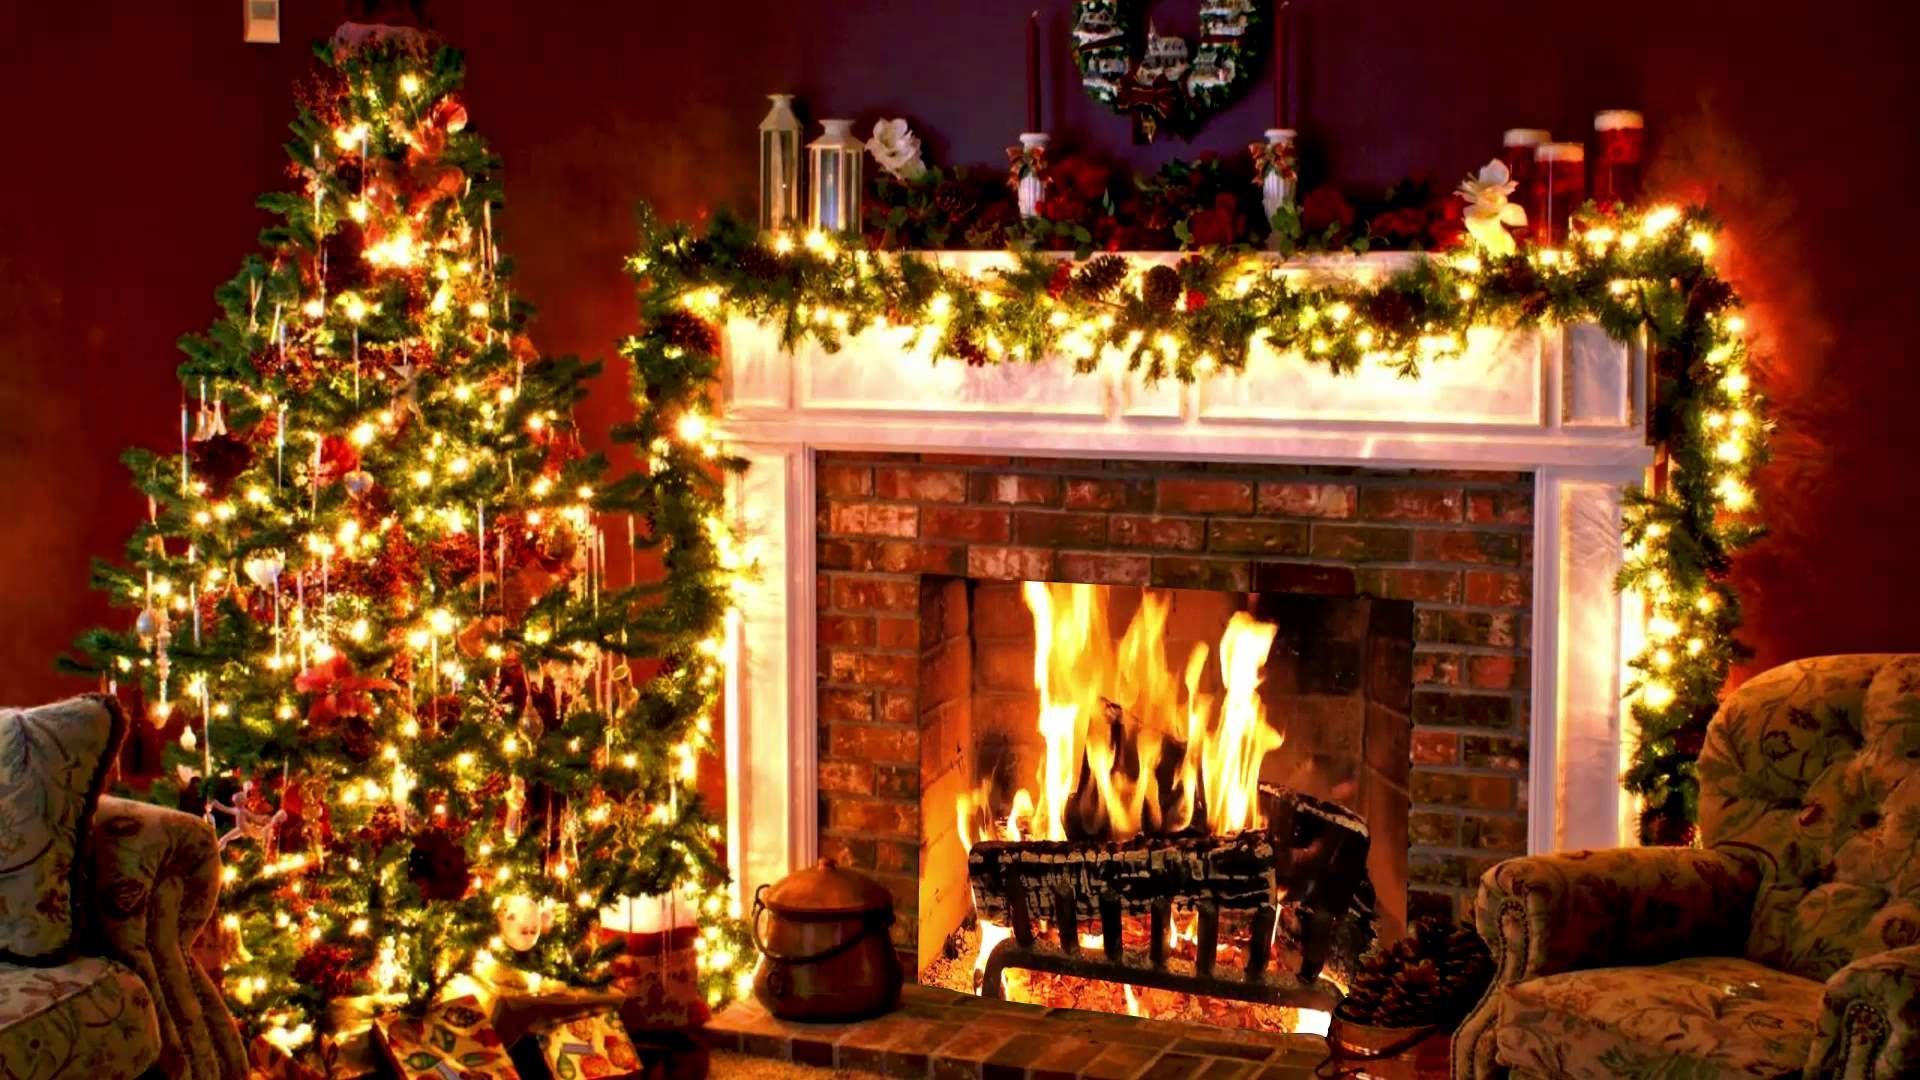 Download Christmas Tree And Fireplace Background High quality 1920x1080